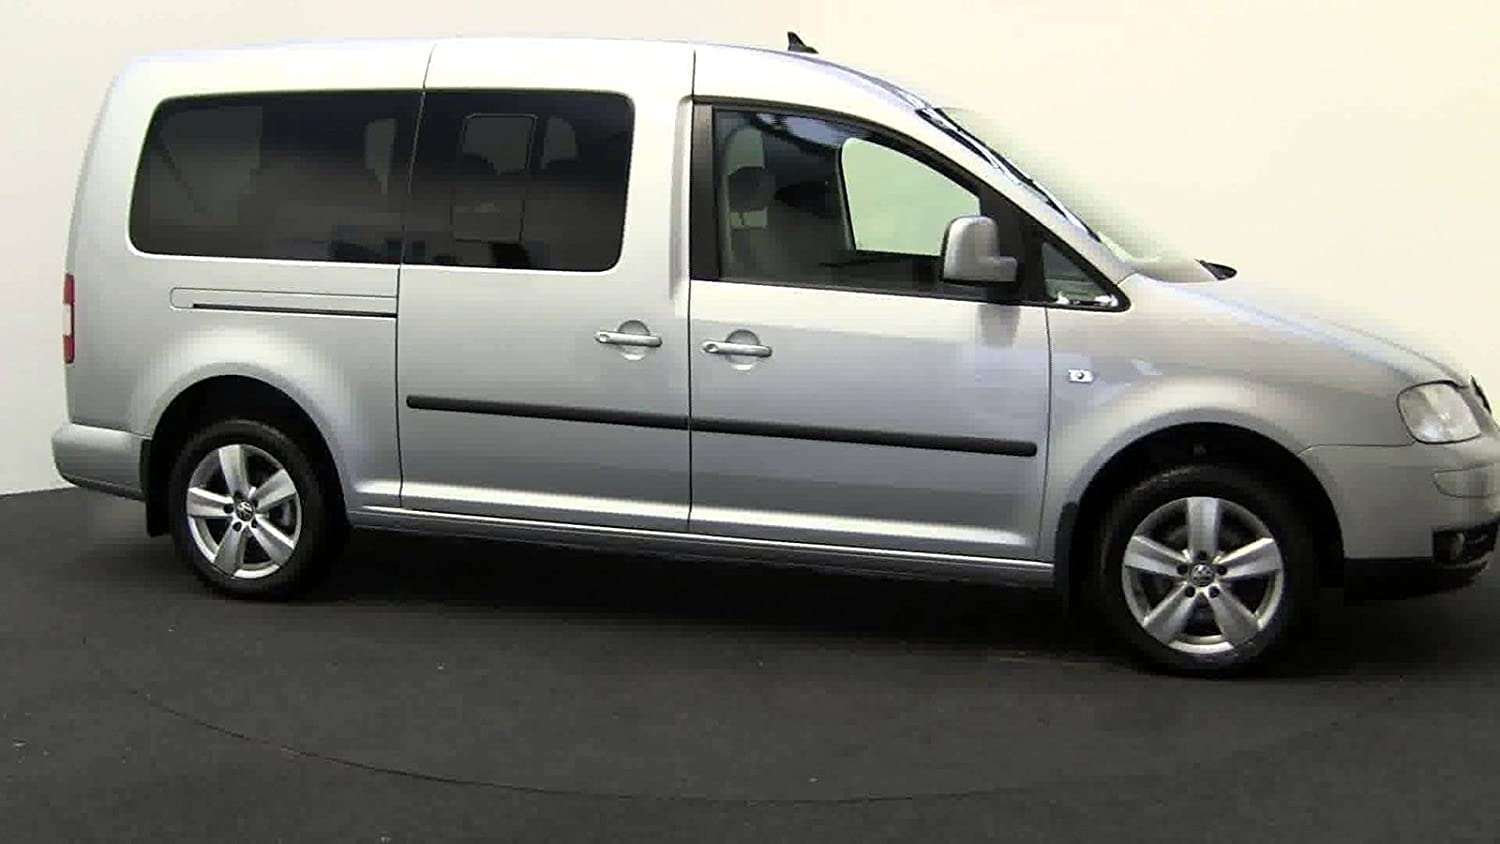 PSSC Pre Cut Front Car Window Films for VW Caddy Maxi 2008 to 2013 05/% Very Dark Limo Tint